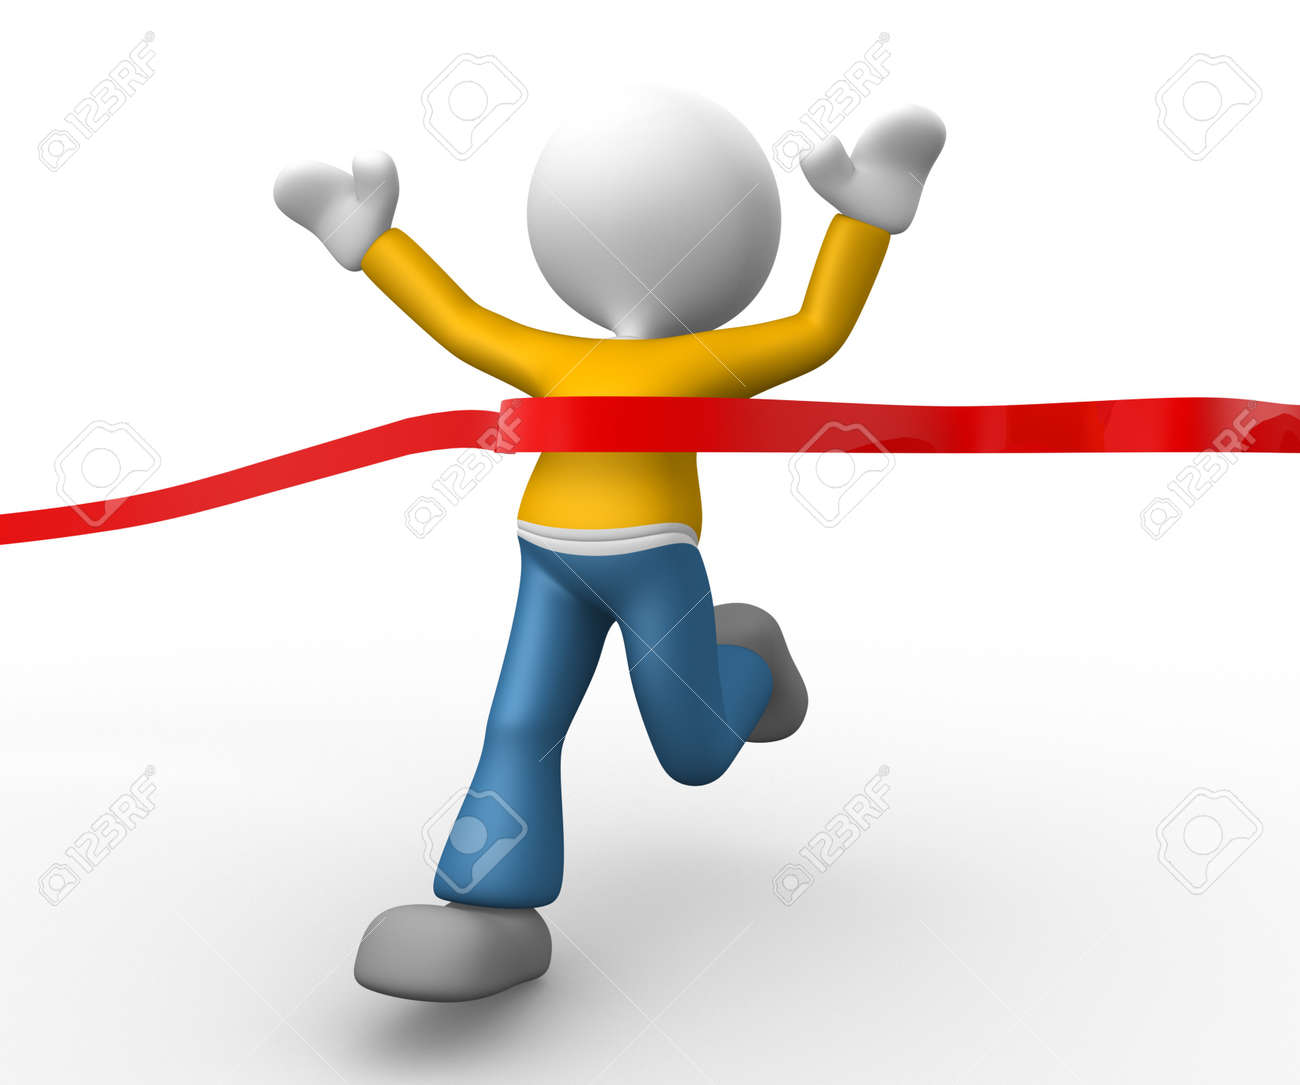 3d people - man, person has reached the finish line Stock Photo - 17792531